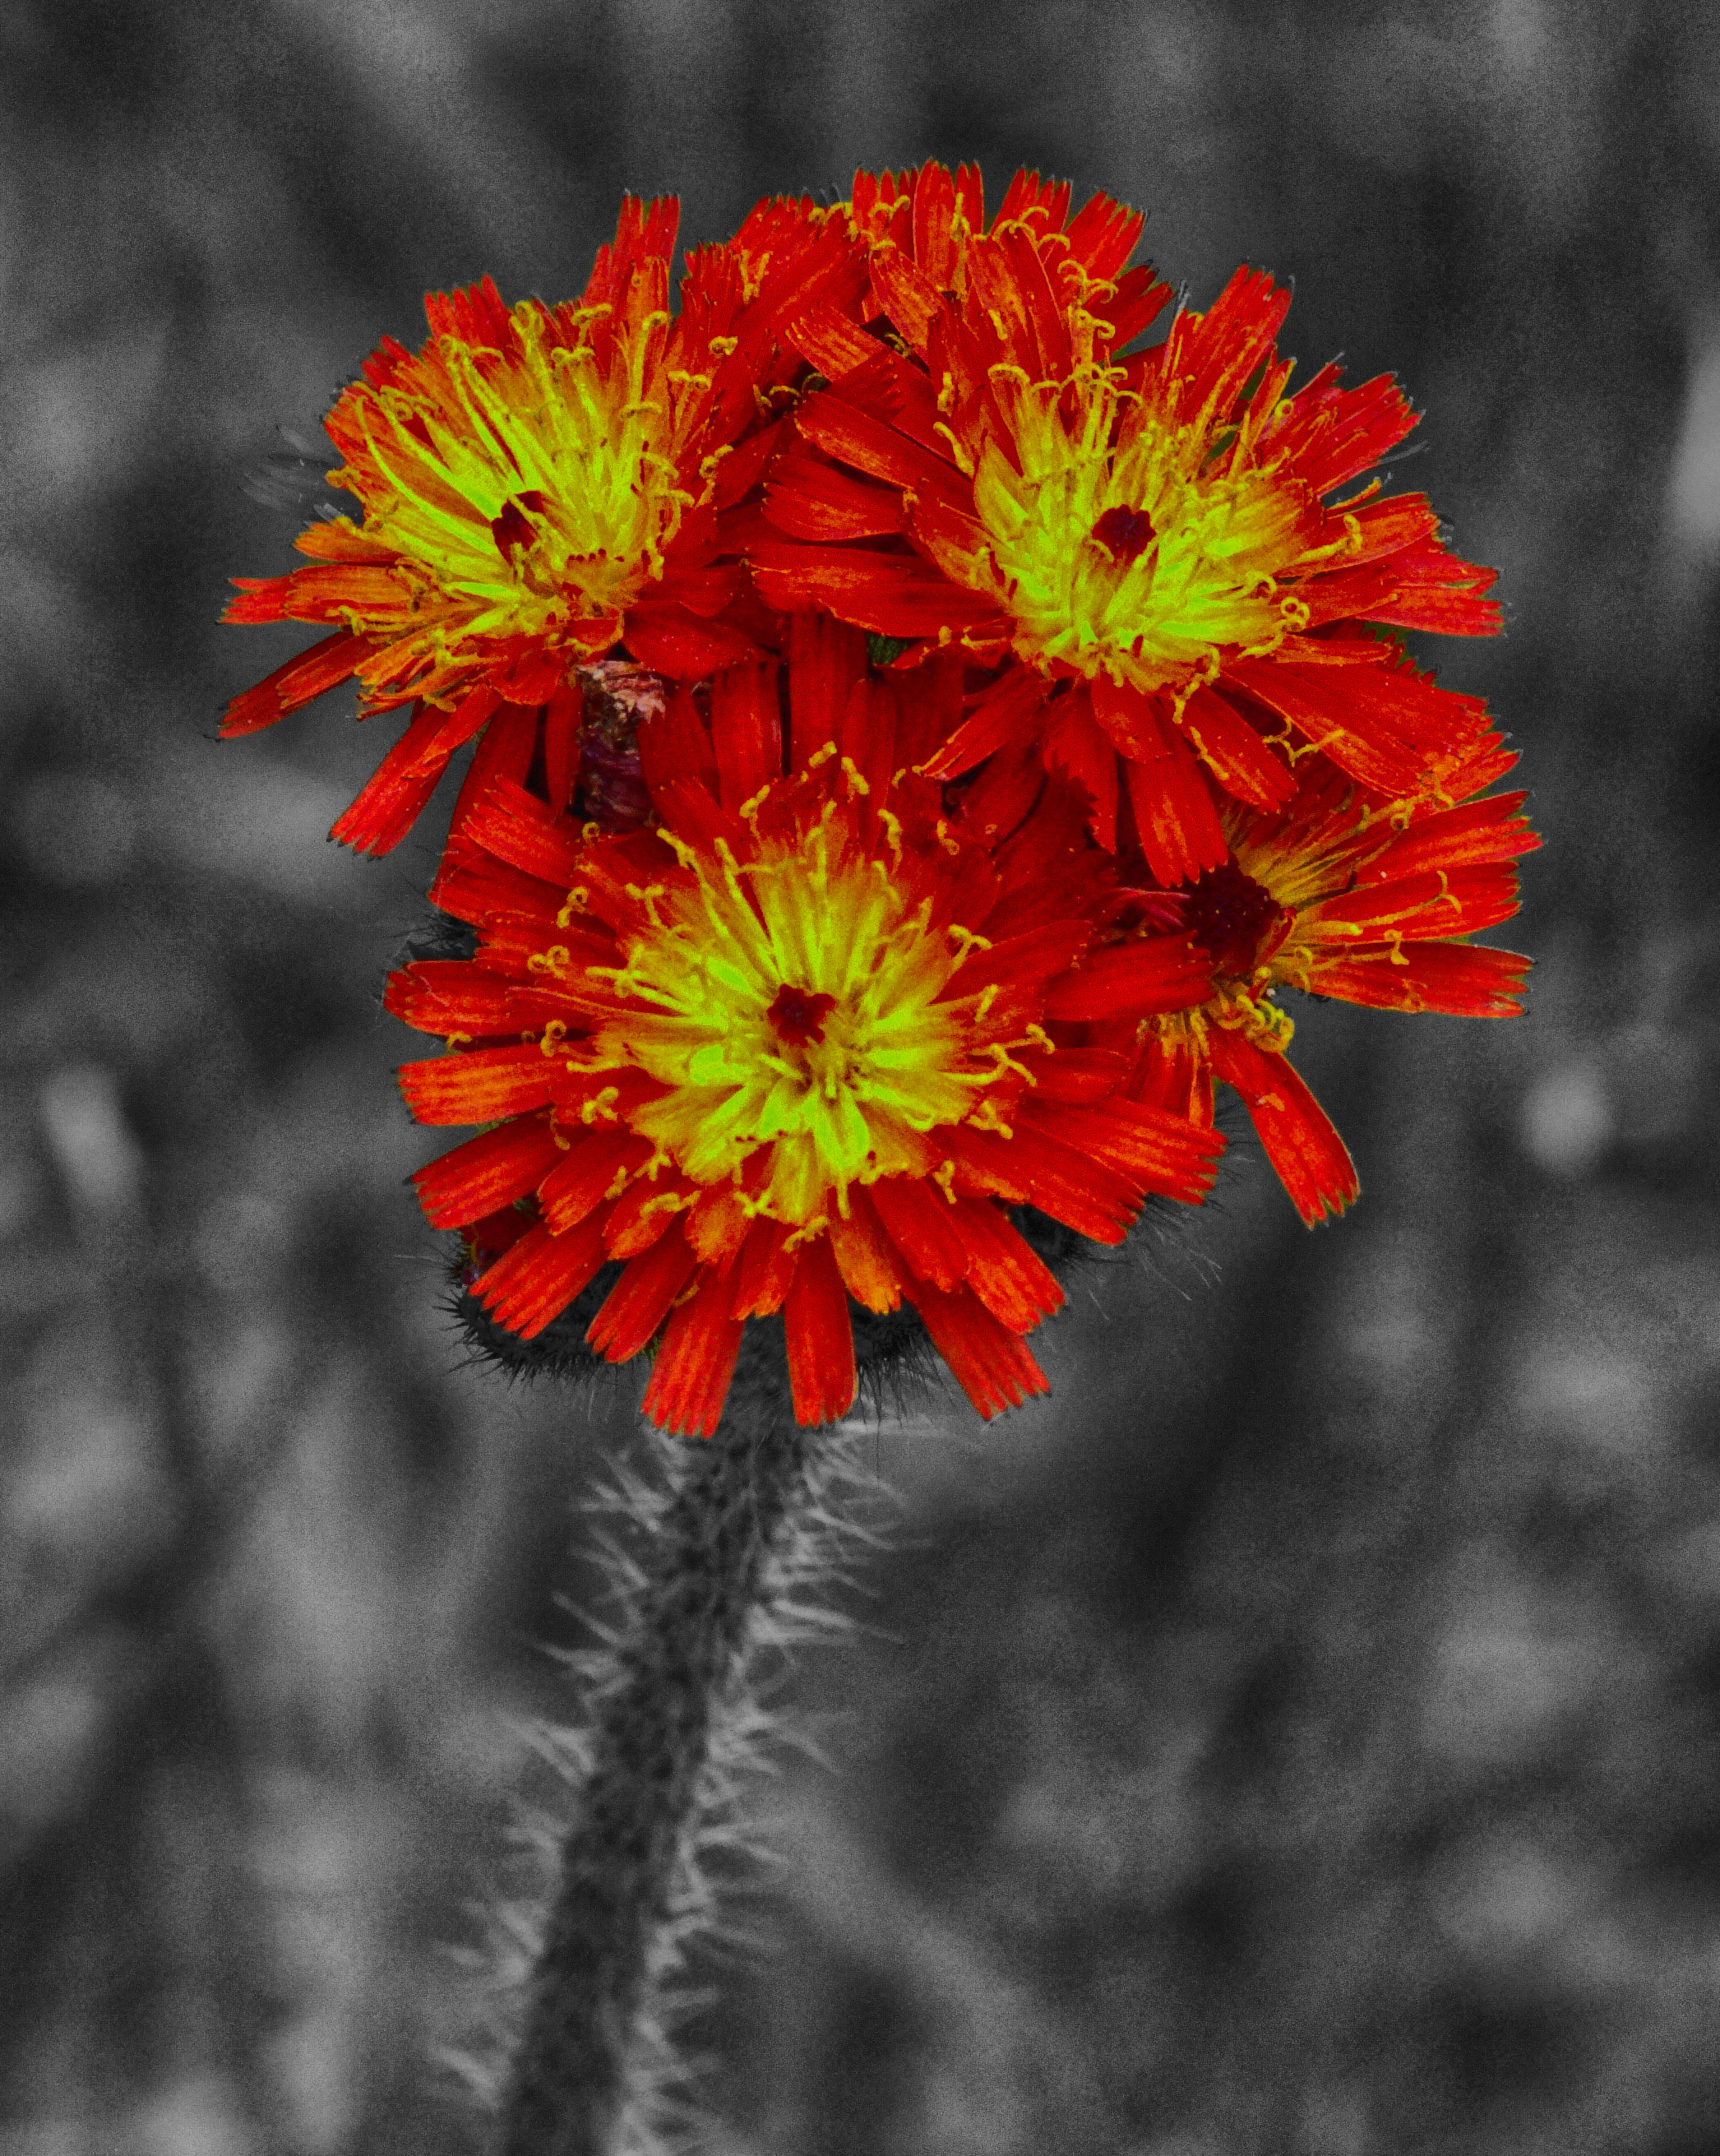 2009_06_10_1179 Orange Hawkweed CrLeCe Bwb_HDR